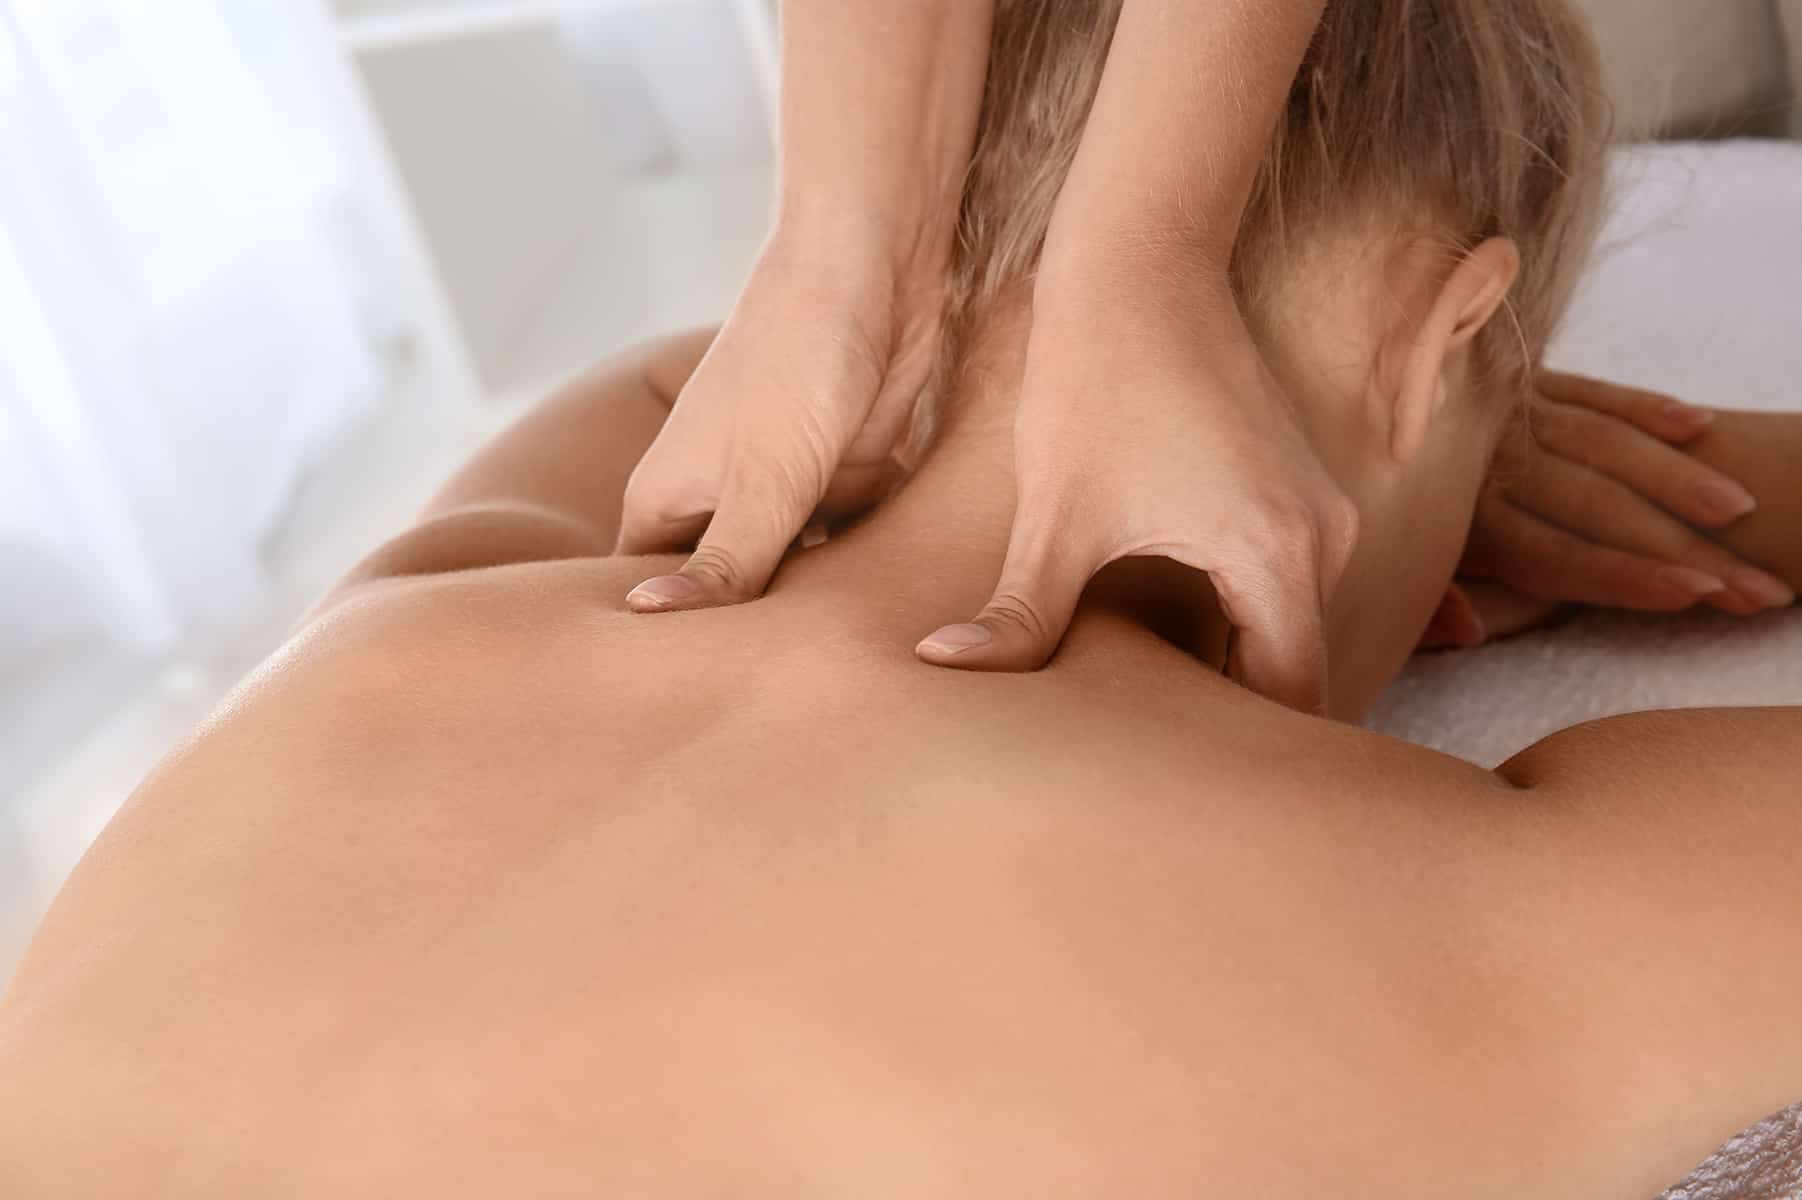 Deep Tissue Massage In Perth By Body for Life - Looking for best deep tissue massage from the massage therapist in Cockburn and Perth? Then Call Body for Life now for best deep tissue massage in Cockburn and Perth. Our Deep tissue massages are effective for many chronic pain conditions. Call us now (08) 6377 7630